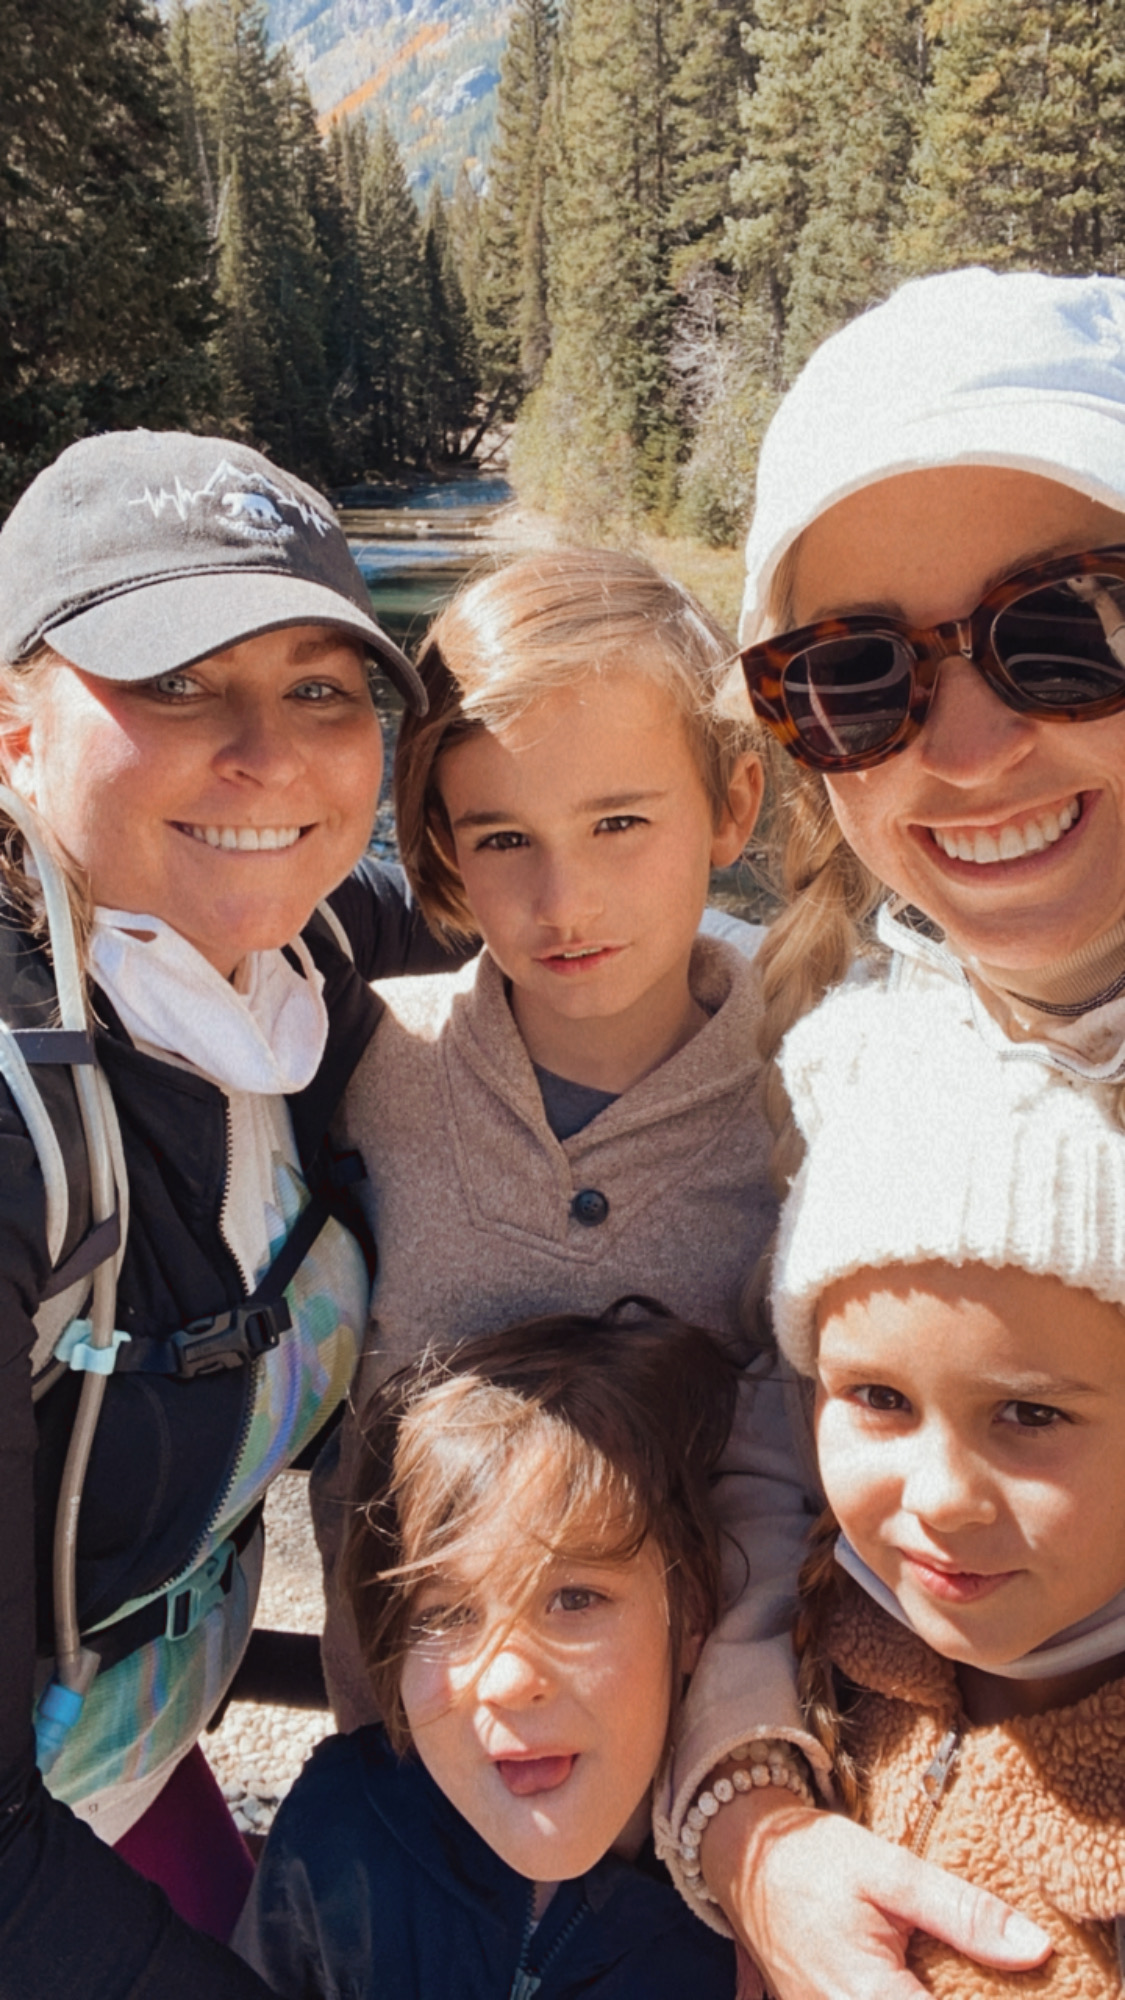 finding fall in the mountains with one last family hike to the grottos. #colorado #familyselfie